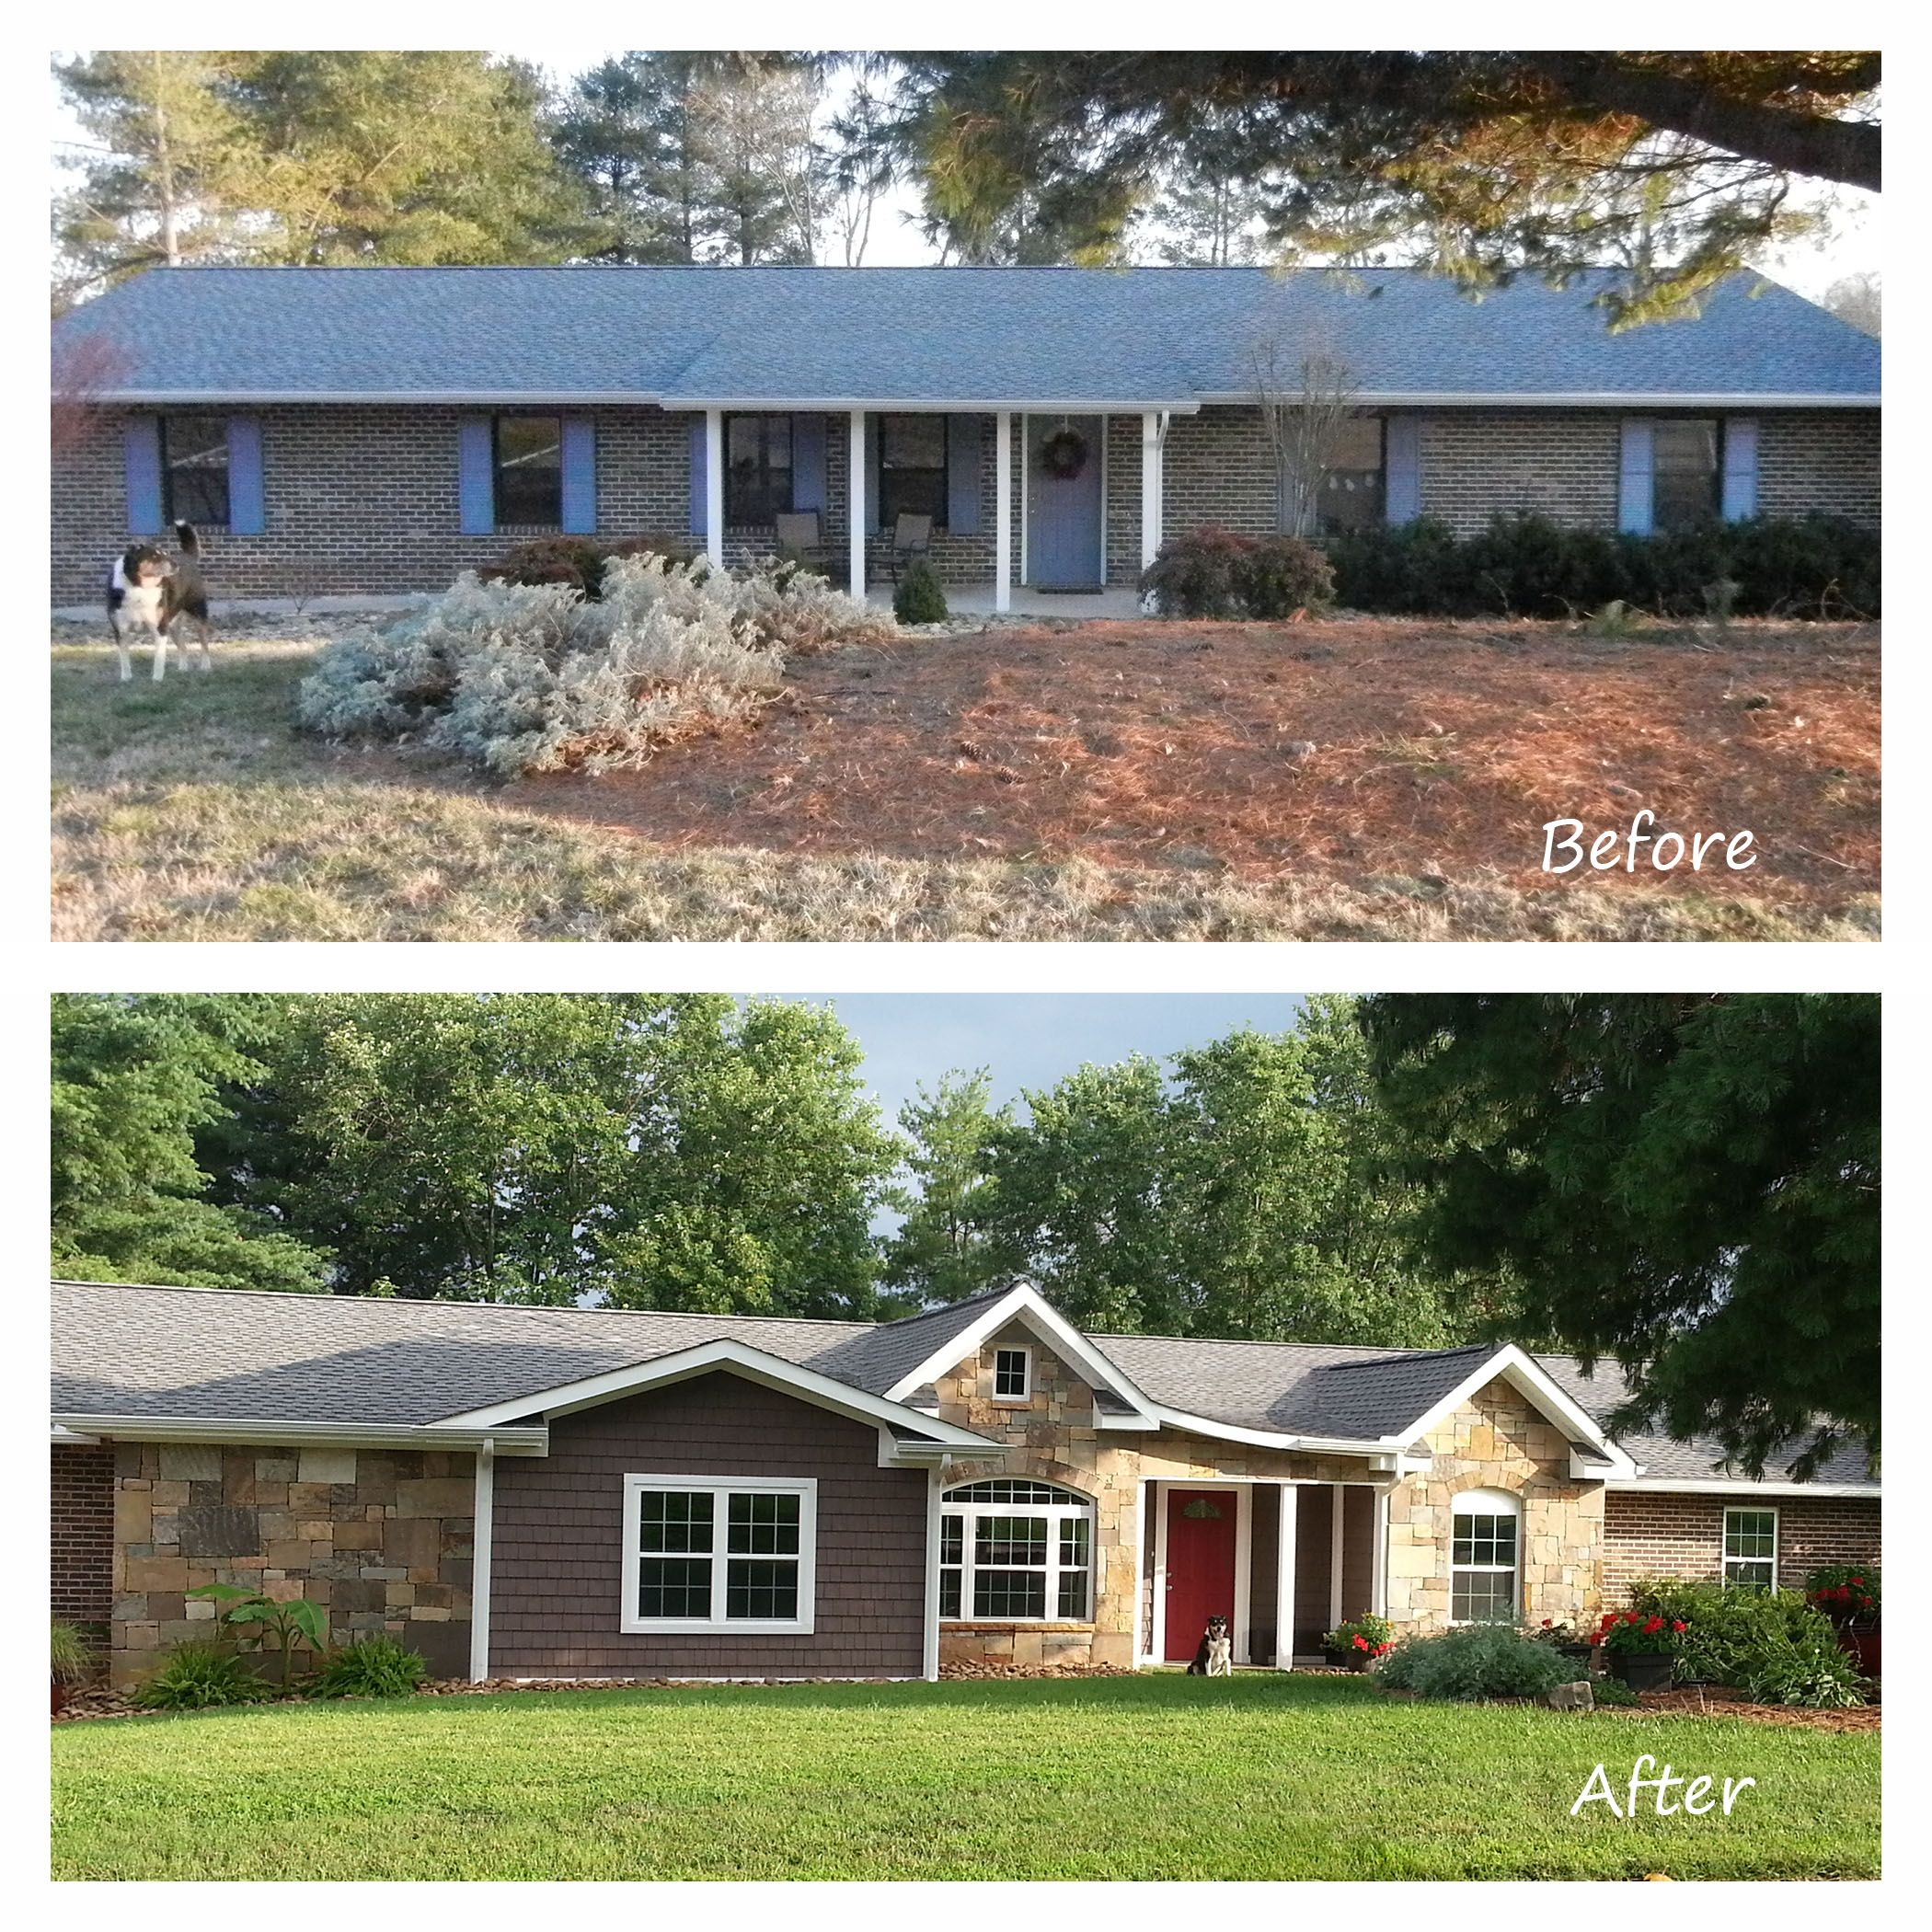 Before And After Exterior Renovation Ranch House Remodel With Stone Shakes And Brick